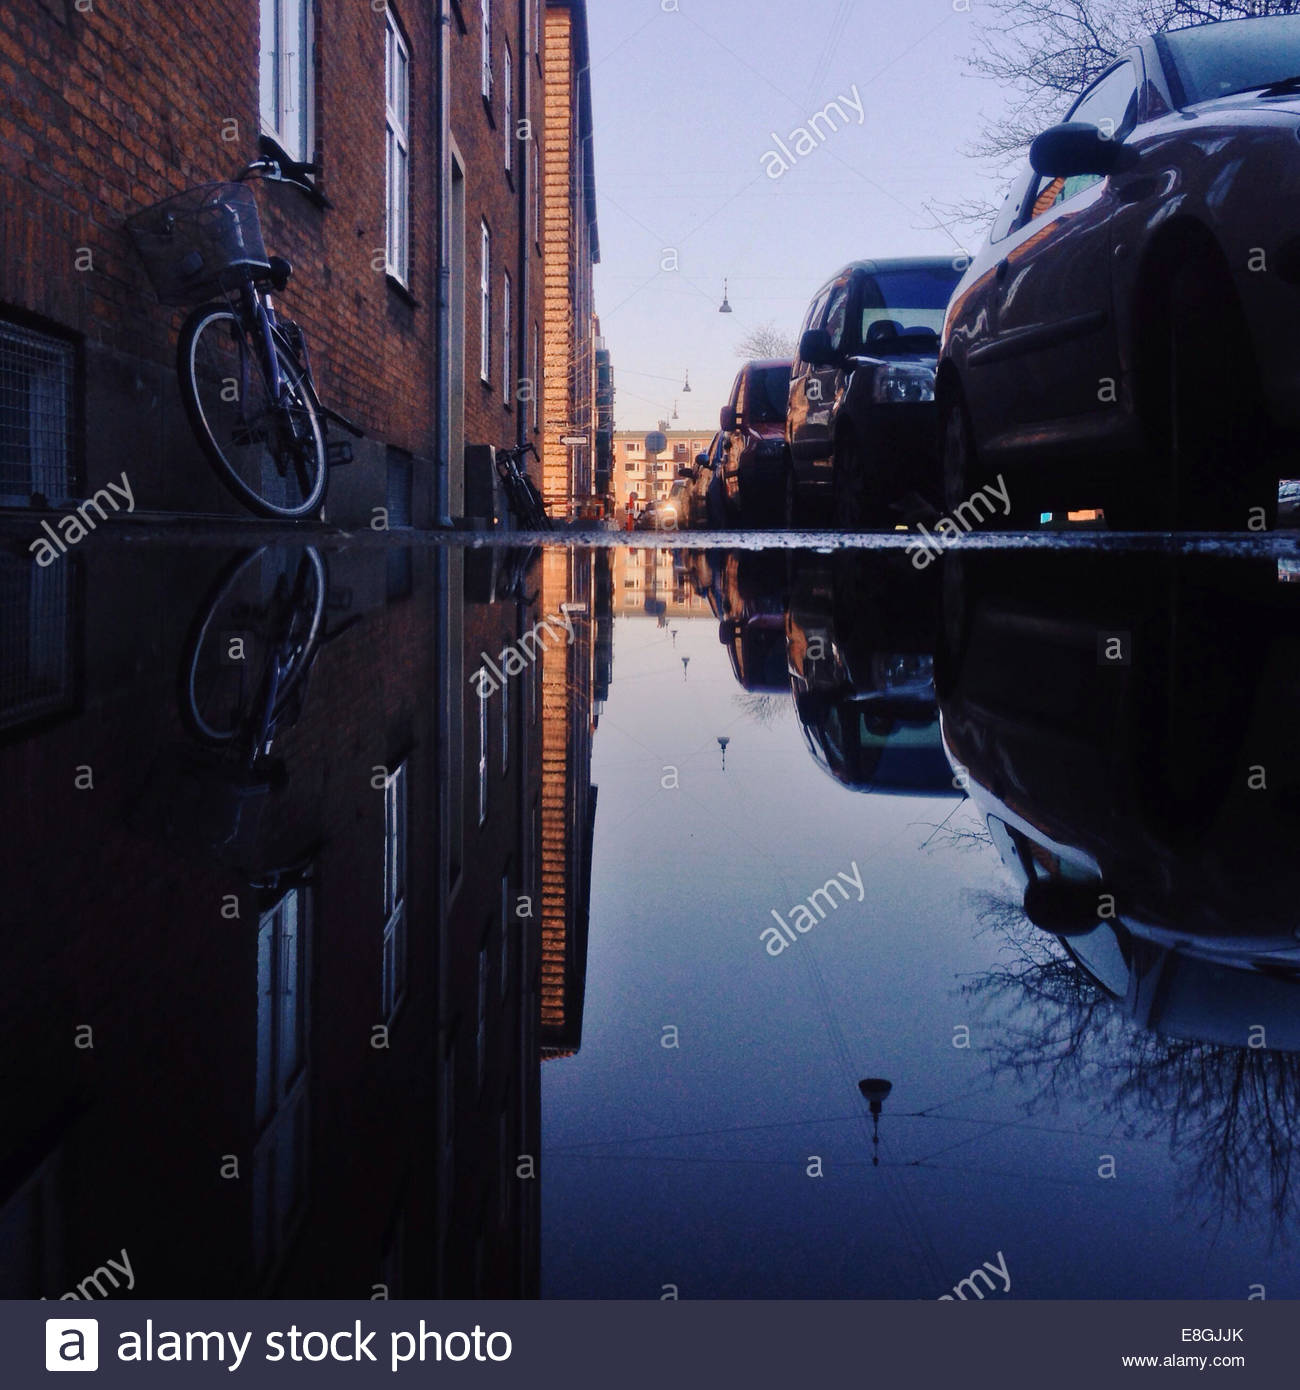 Parked cars reflected in puddle - Stock Image